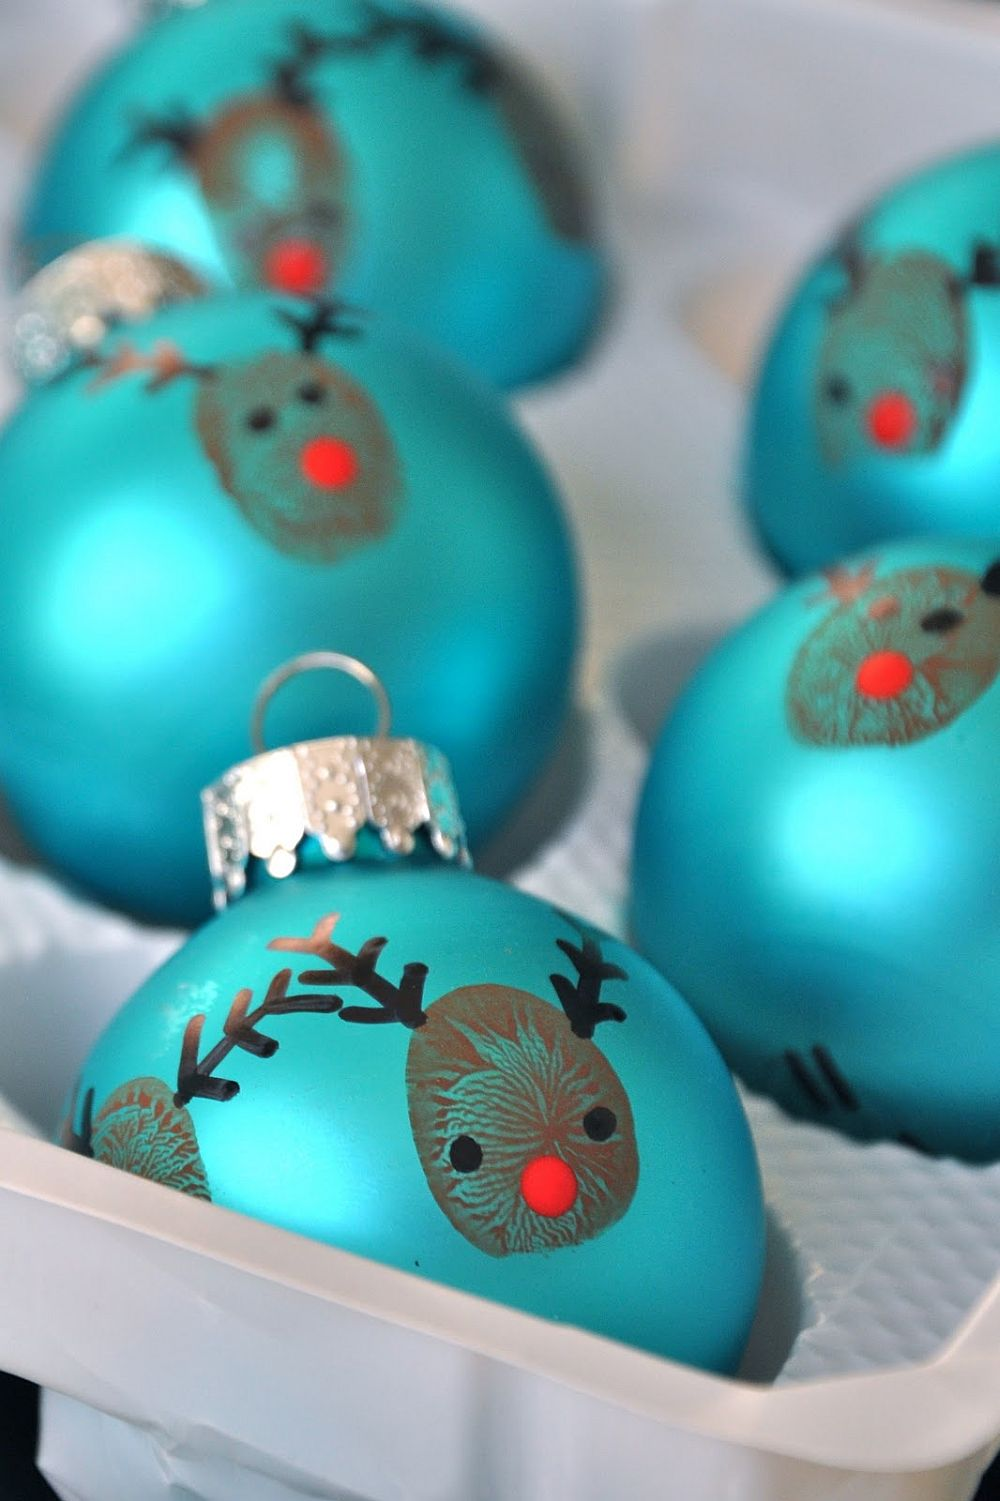 20-Minute Christmas Ornaments with Reindeer Motif